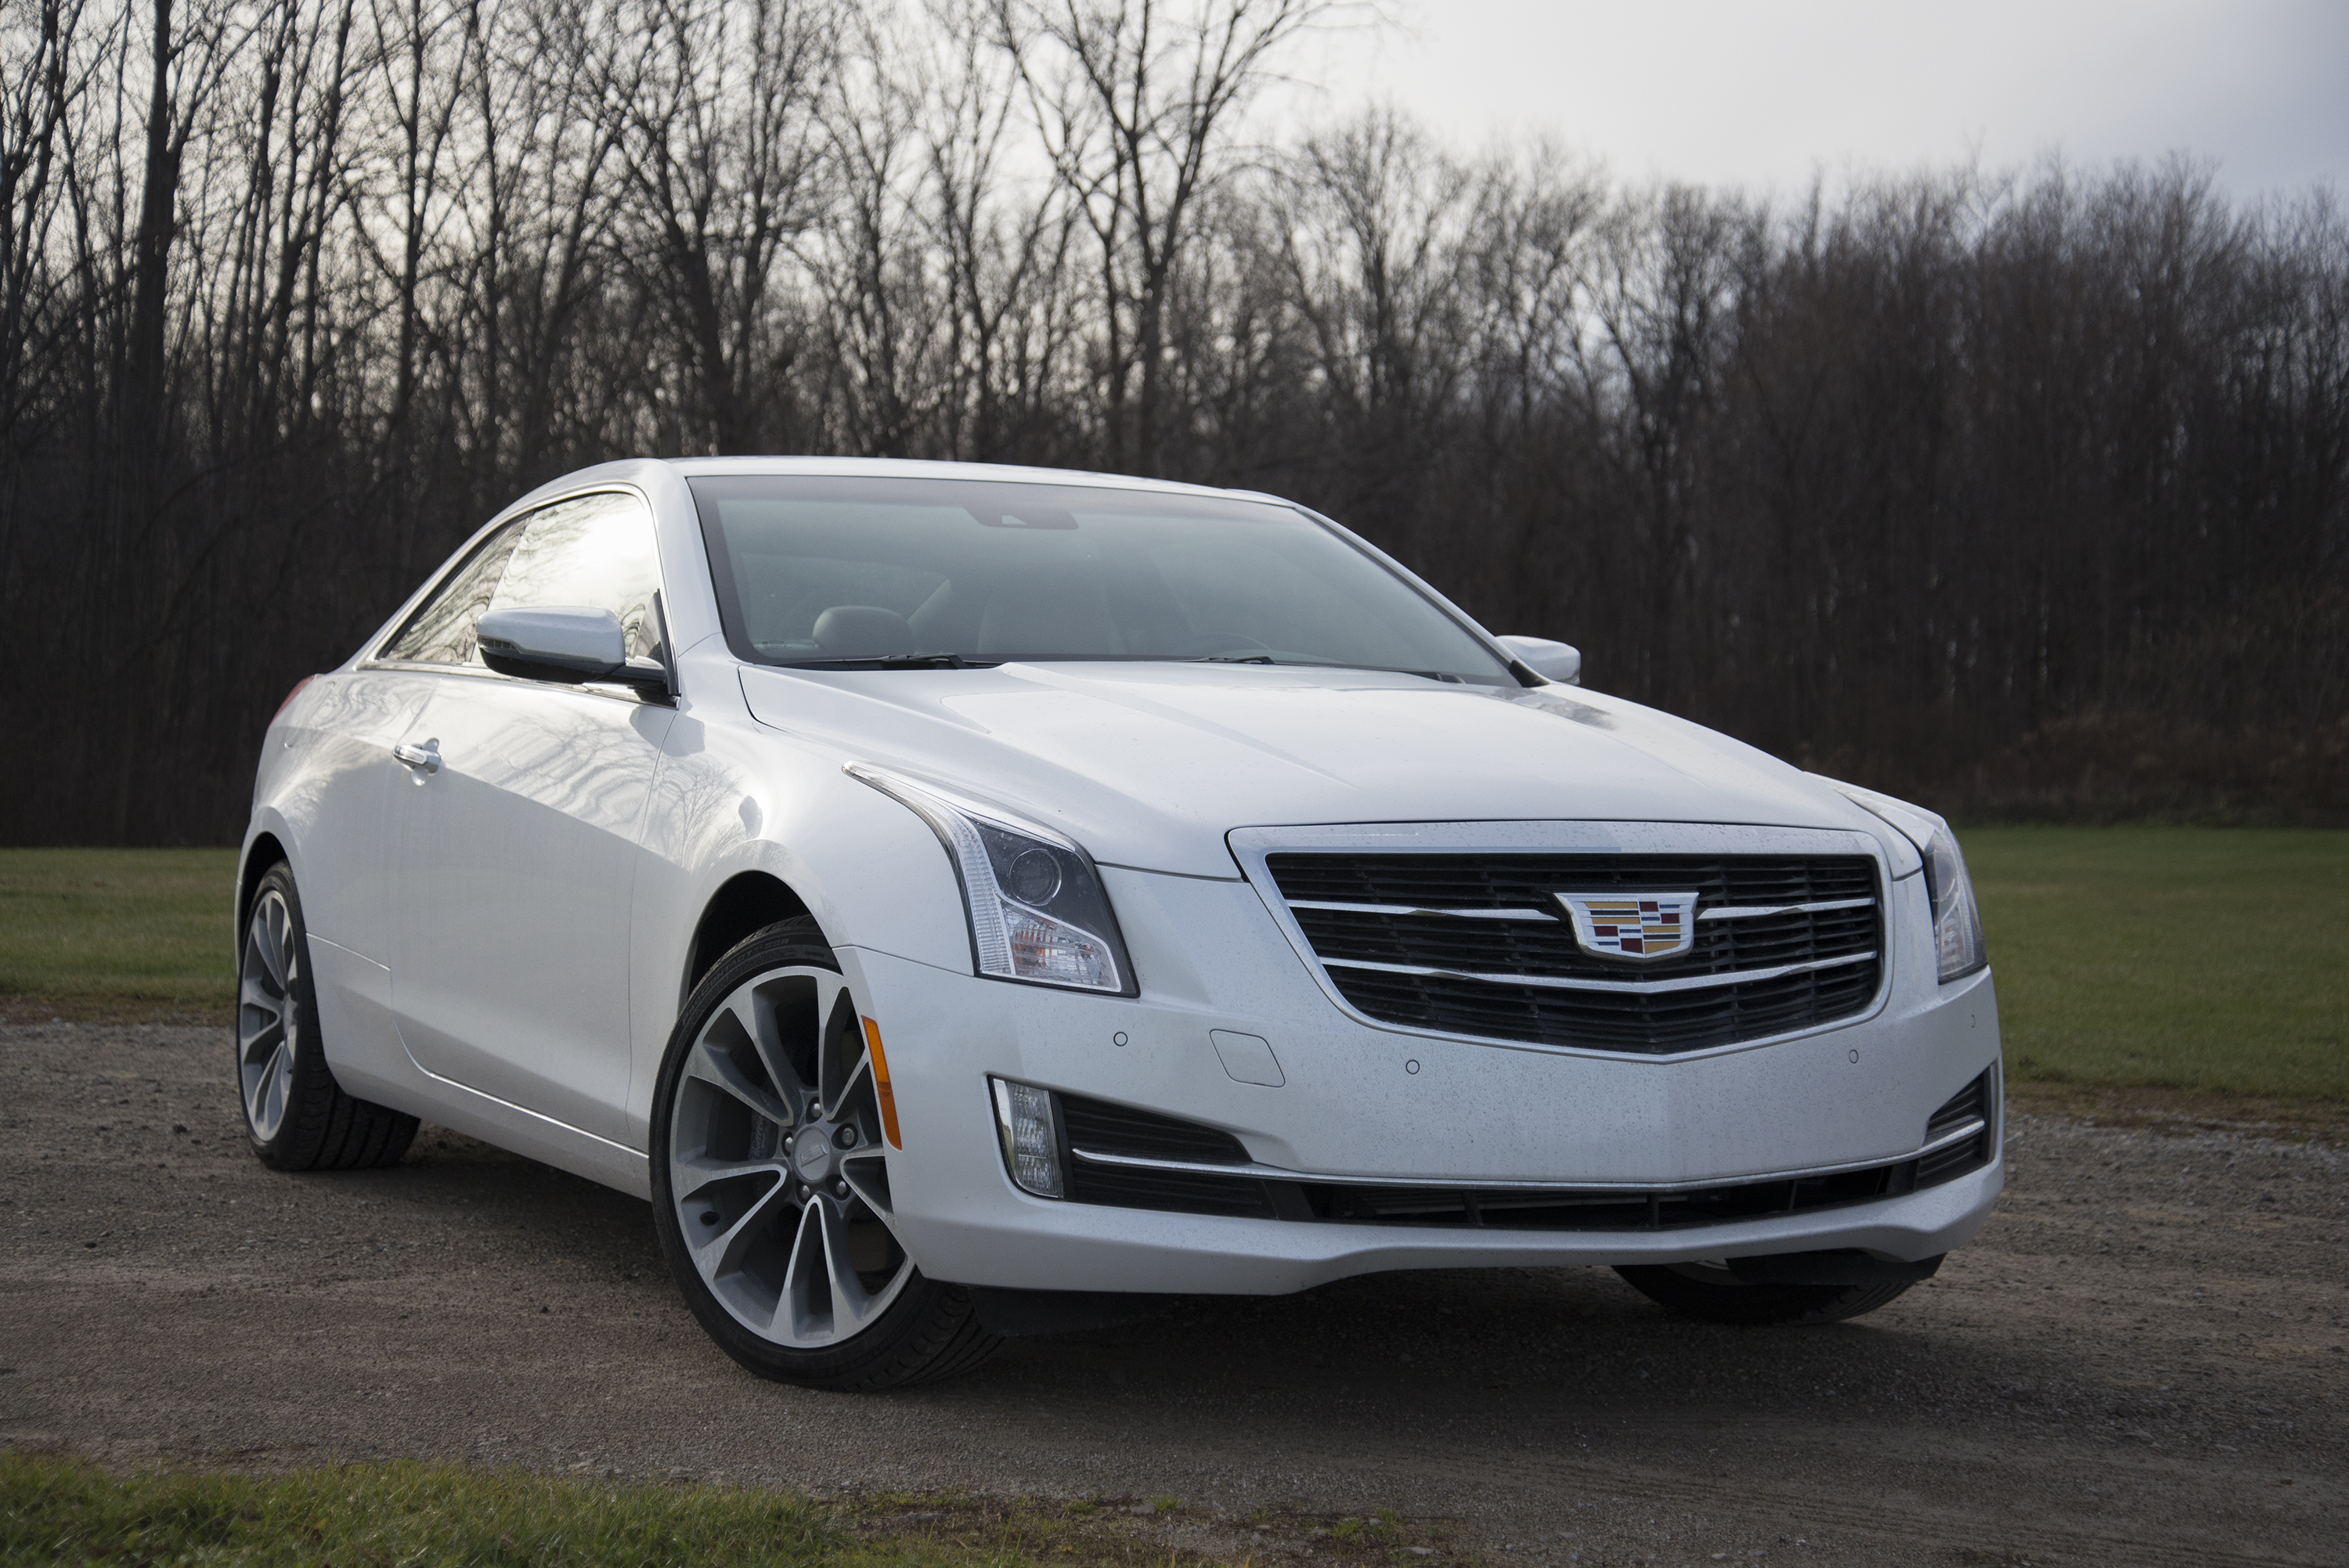 Cadillac Ats Coupe >> Seat Time: 2015 Cadillac ATS Coupe – John's Journal on Autoline